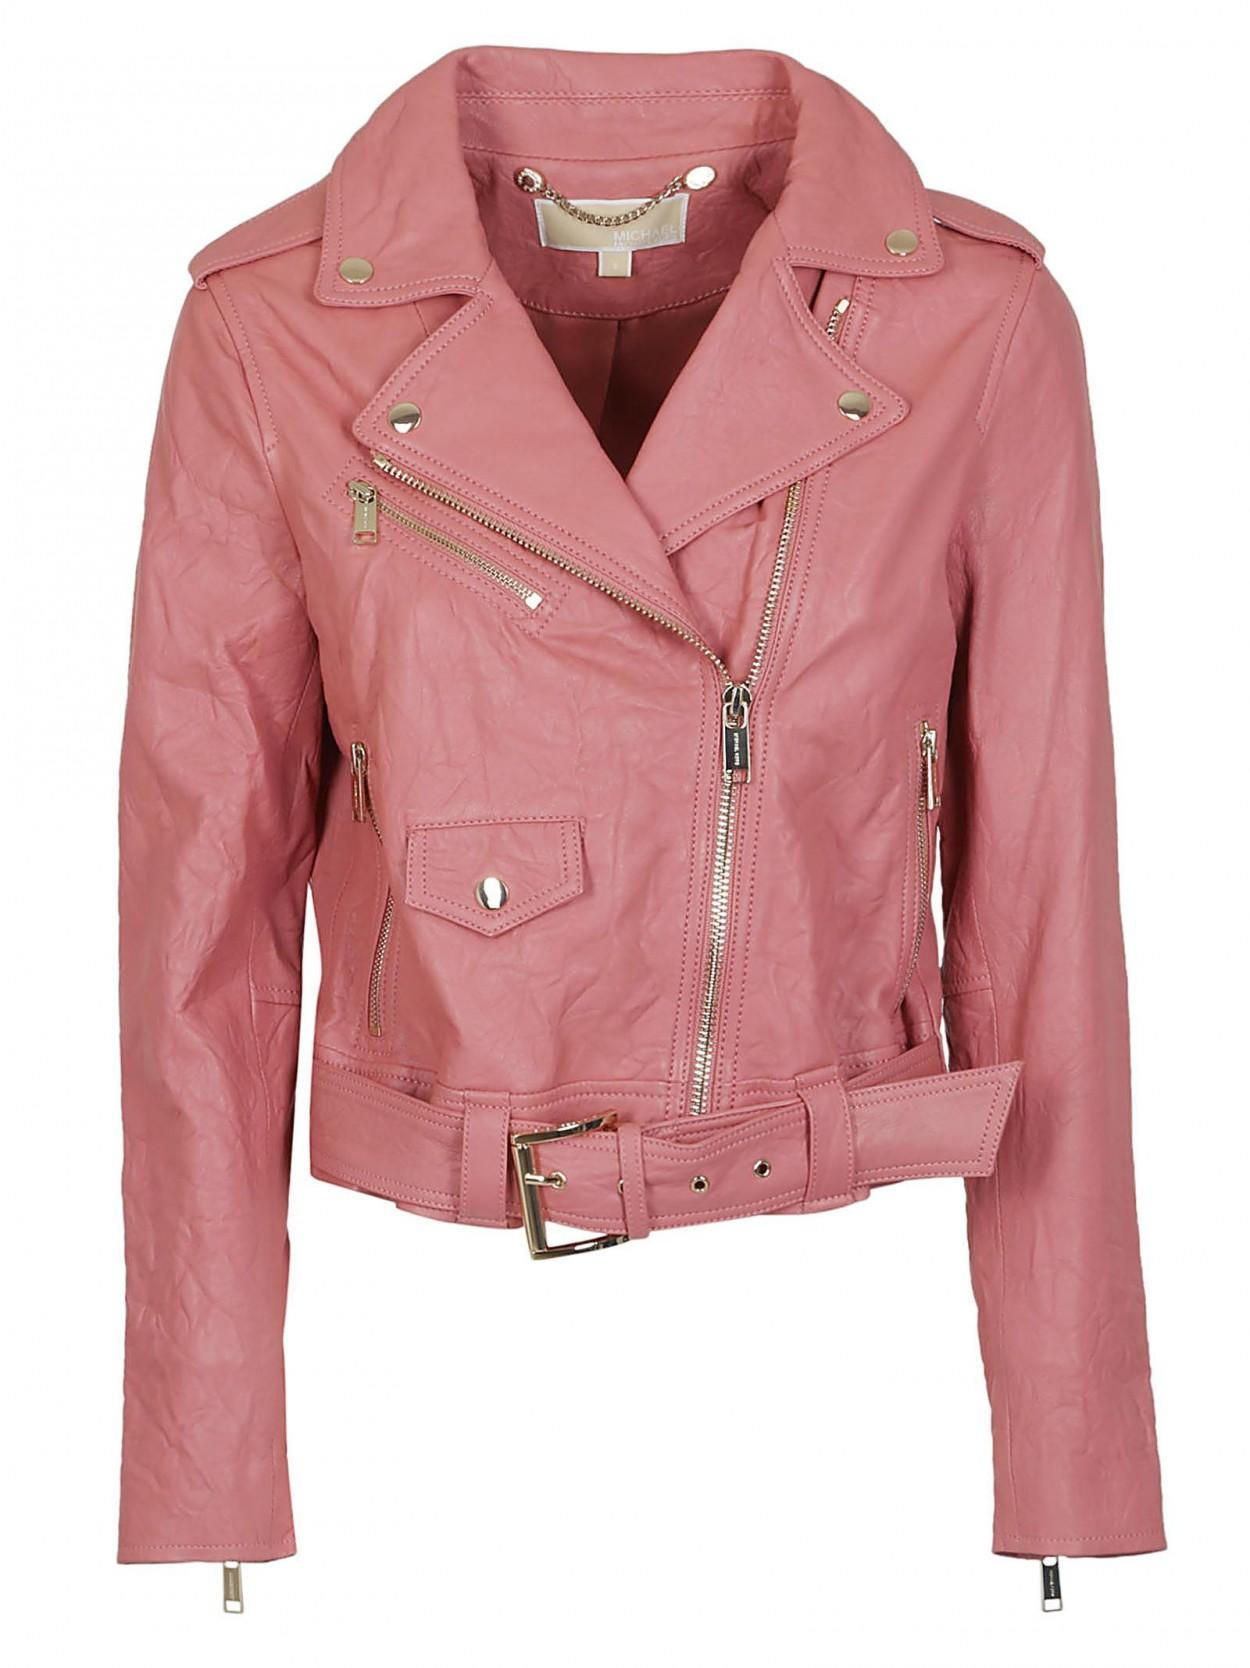 927a84f5bb Lyst - Michael Kors MICHAEL KORS giacca salmone in Pink